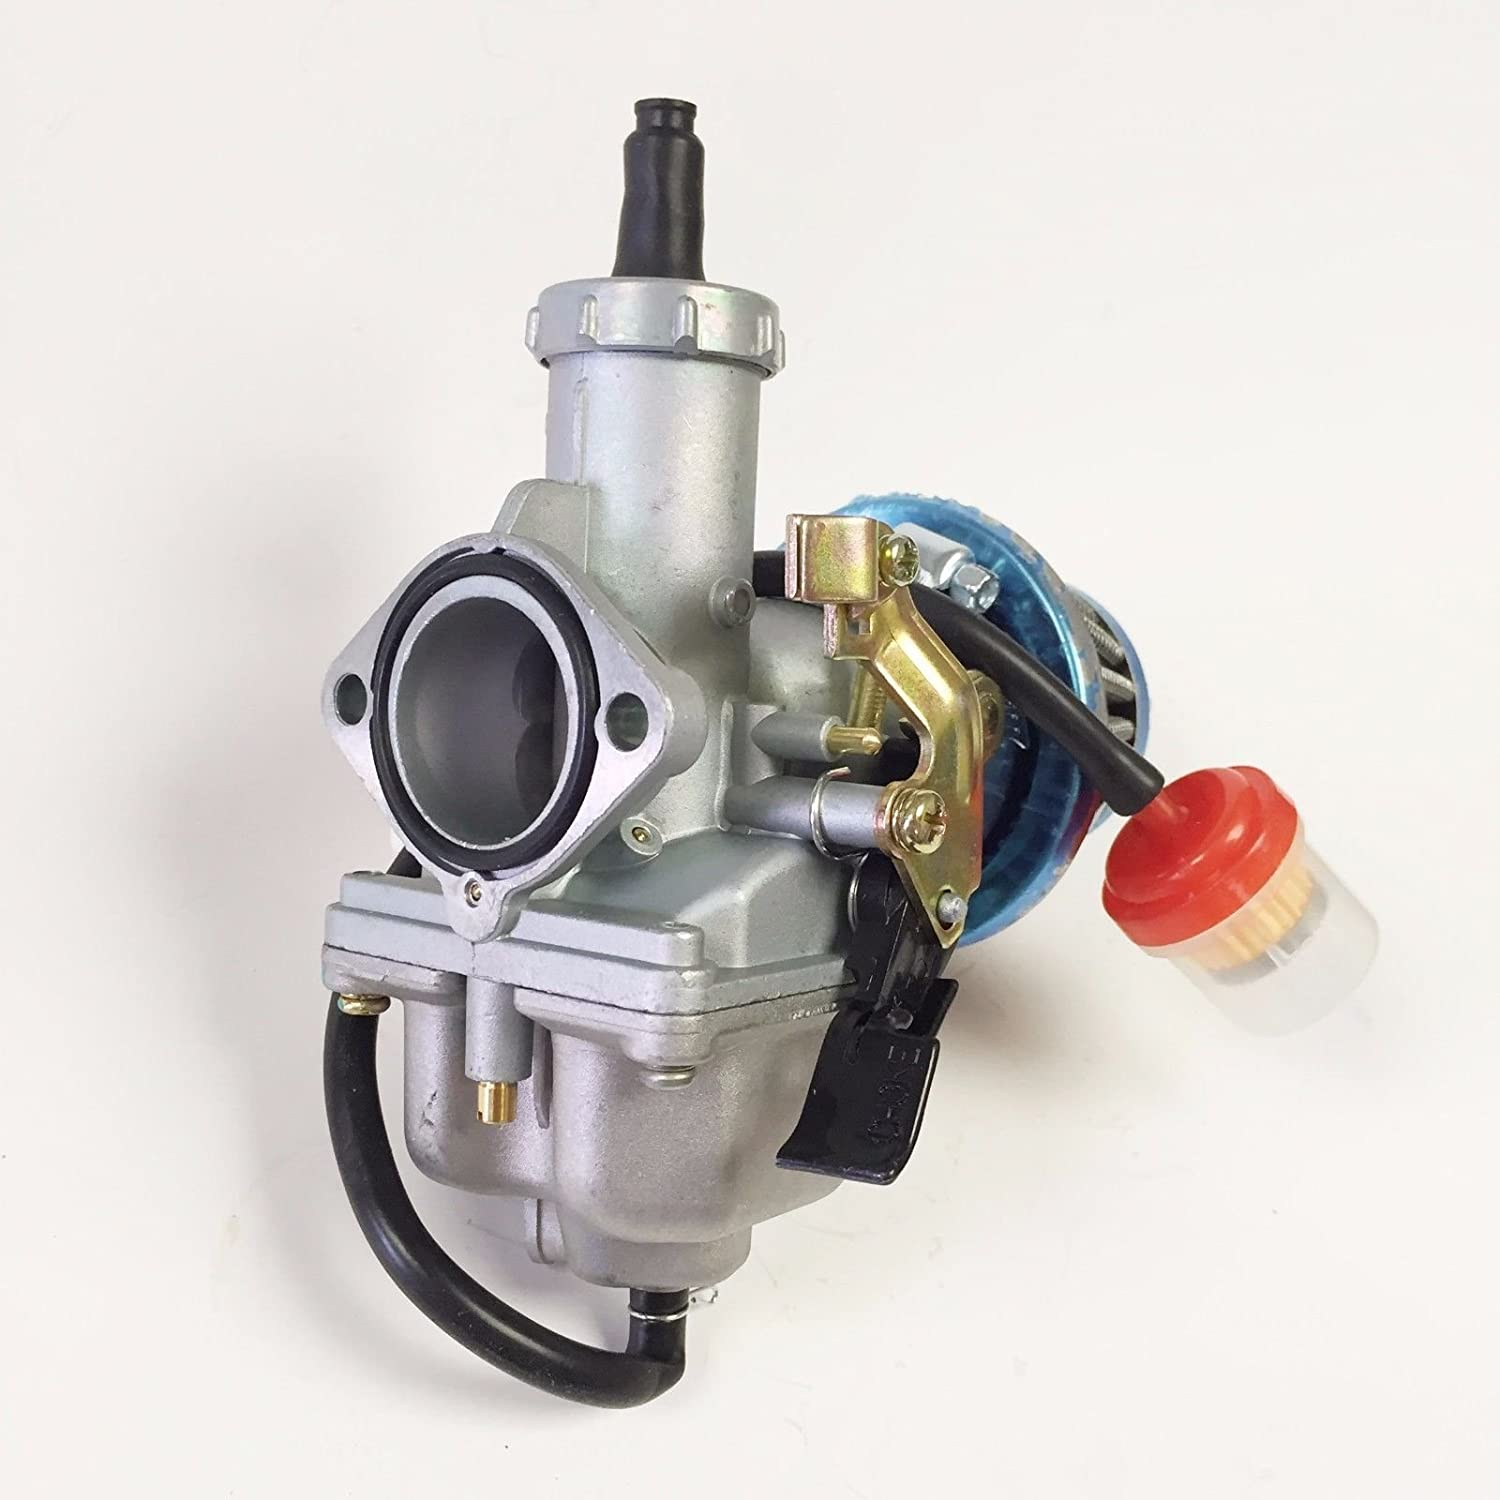 44mm PZ30 Air Filter Carburetor 200cc 250cc Dirt Bike ATV